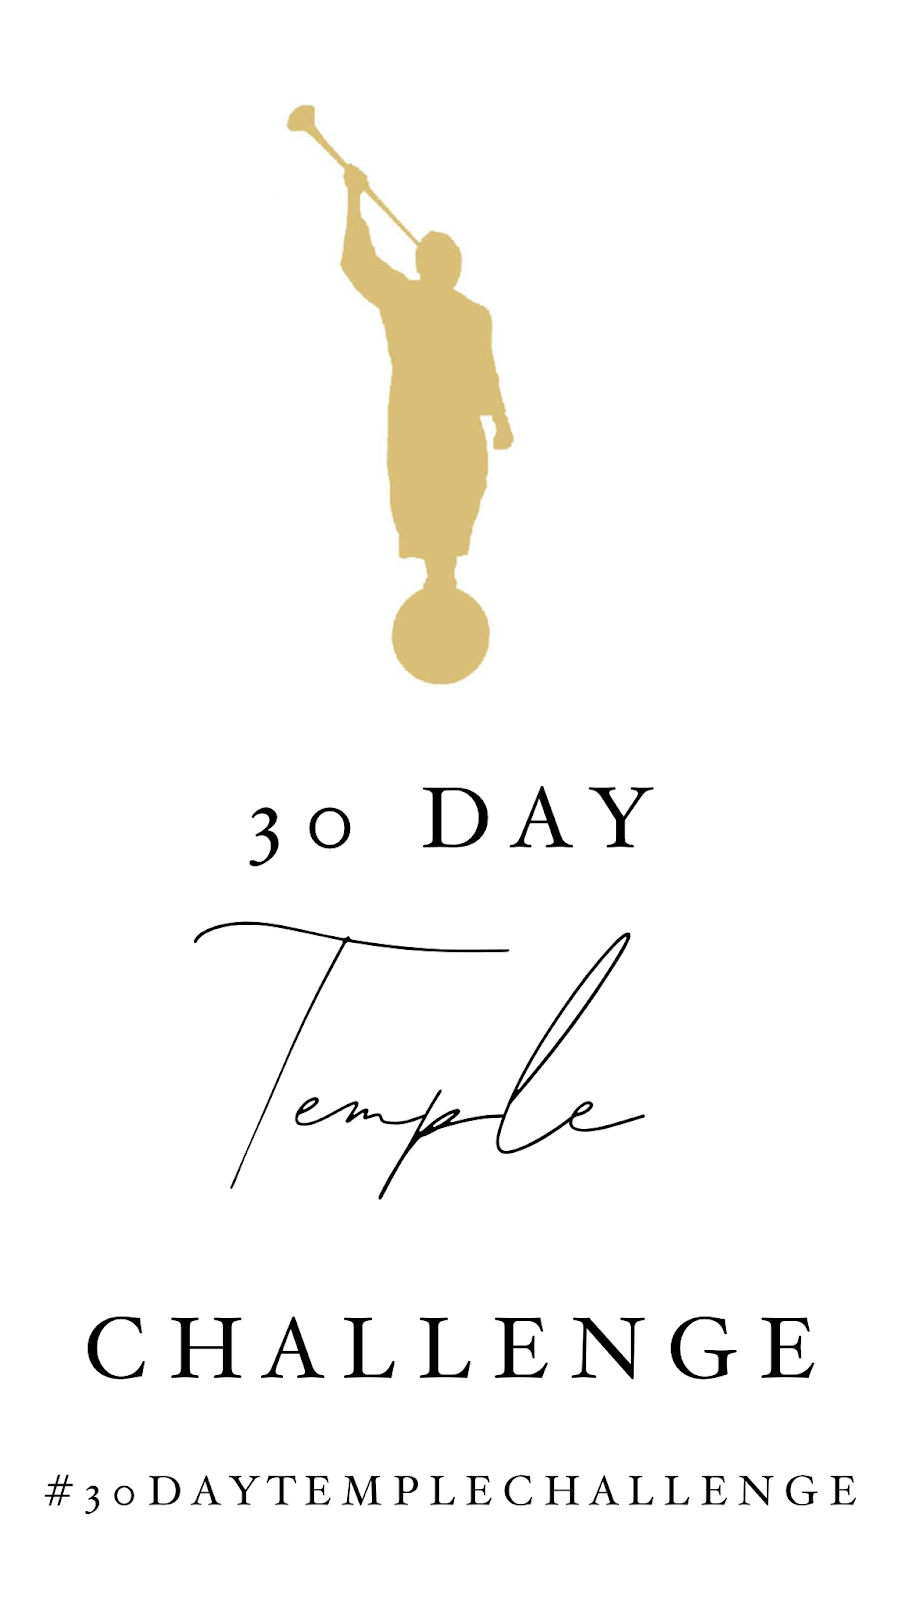 30 Day Temple Challenge